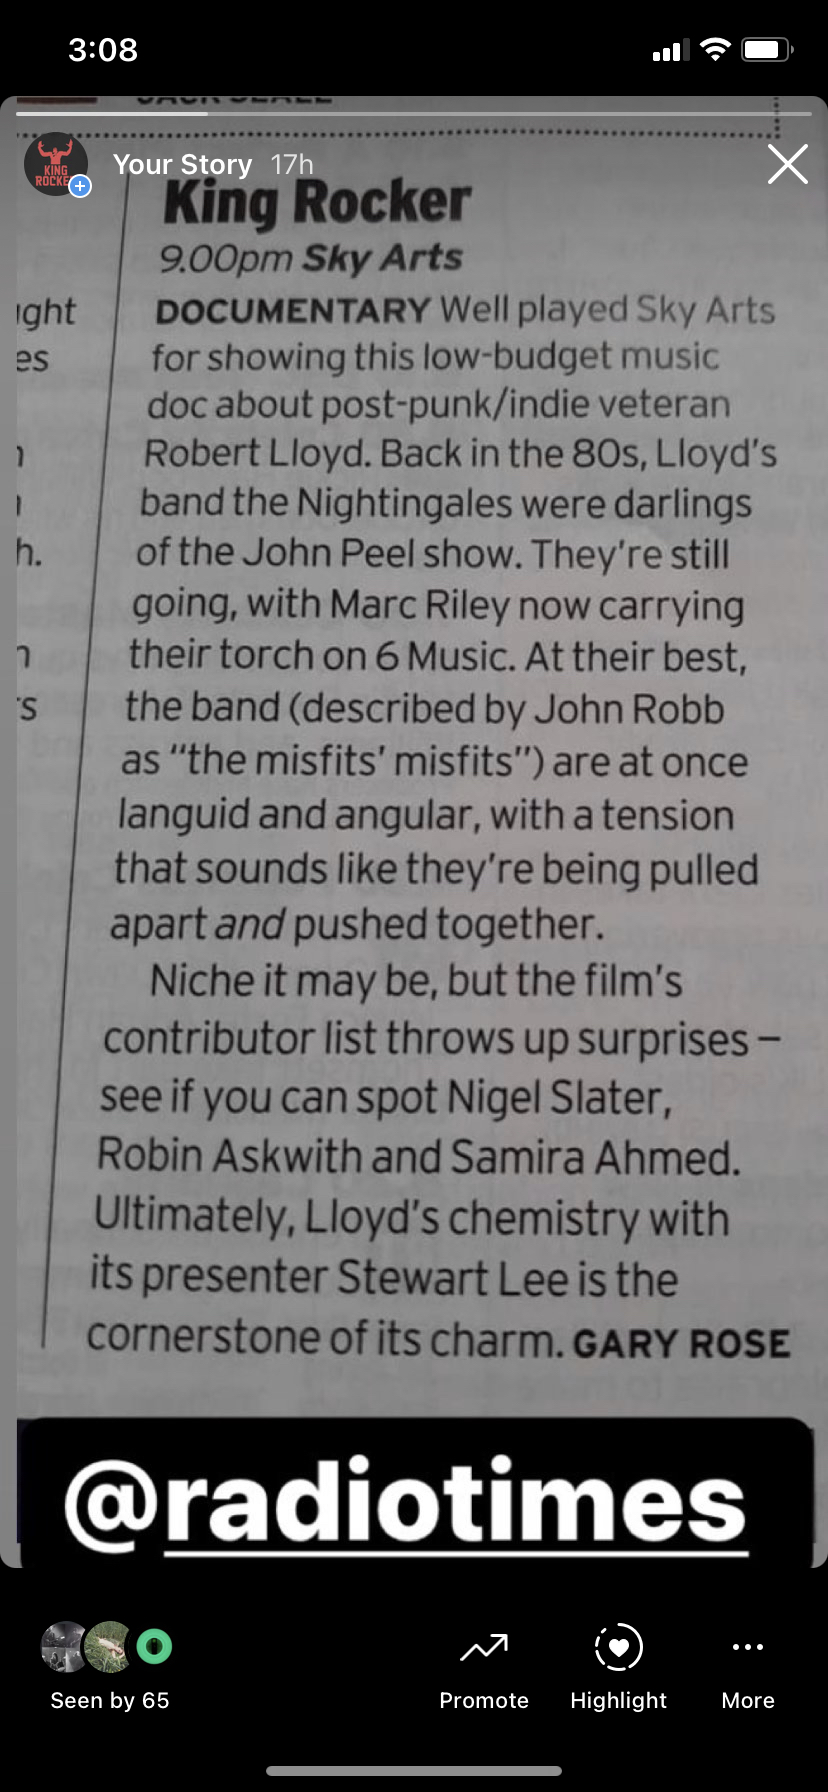 TV Pick in Radio Times